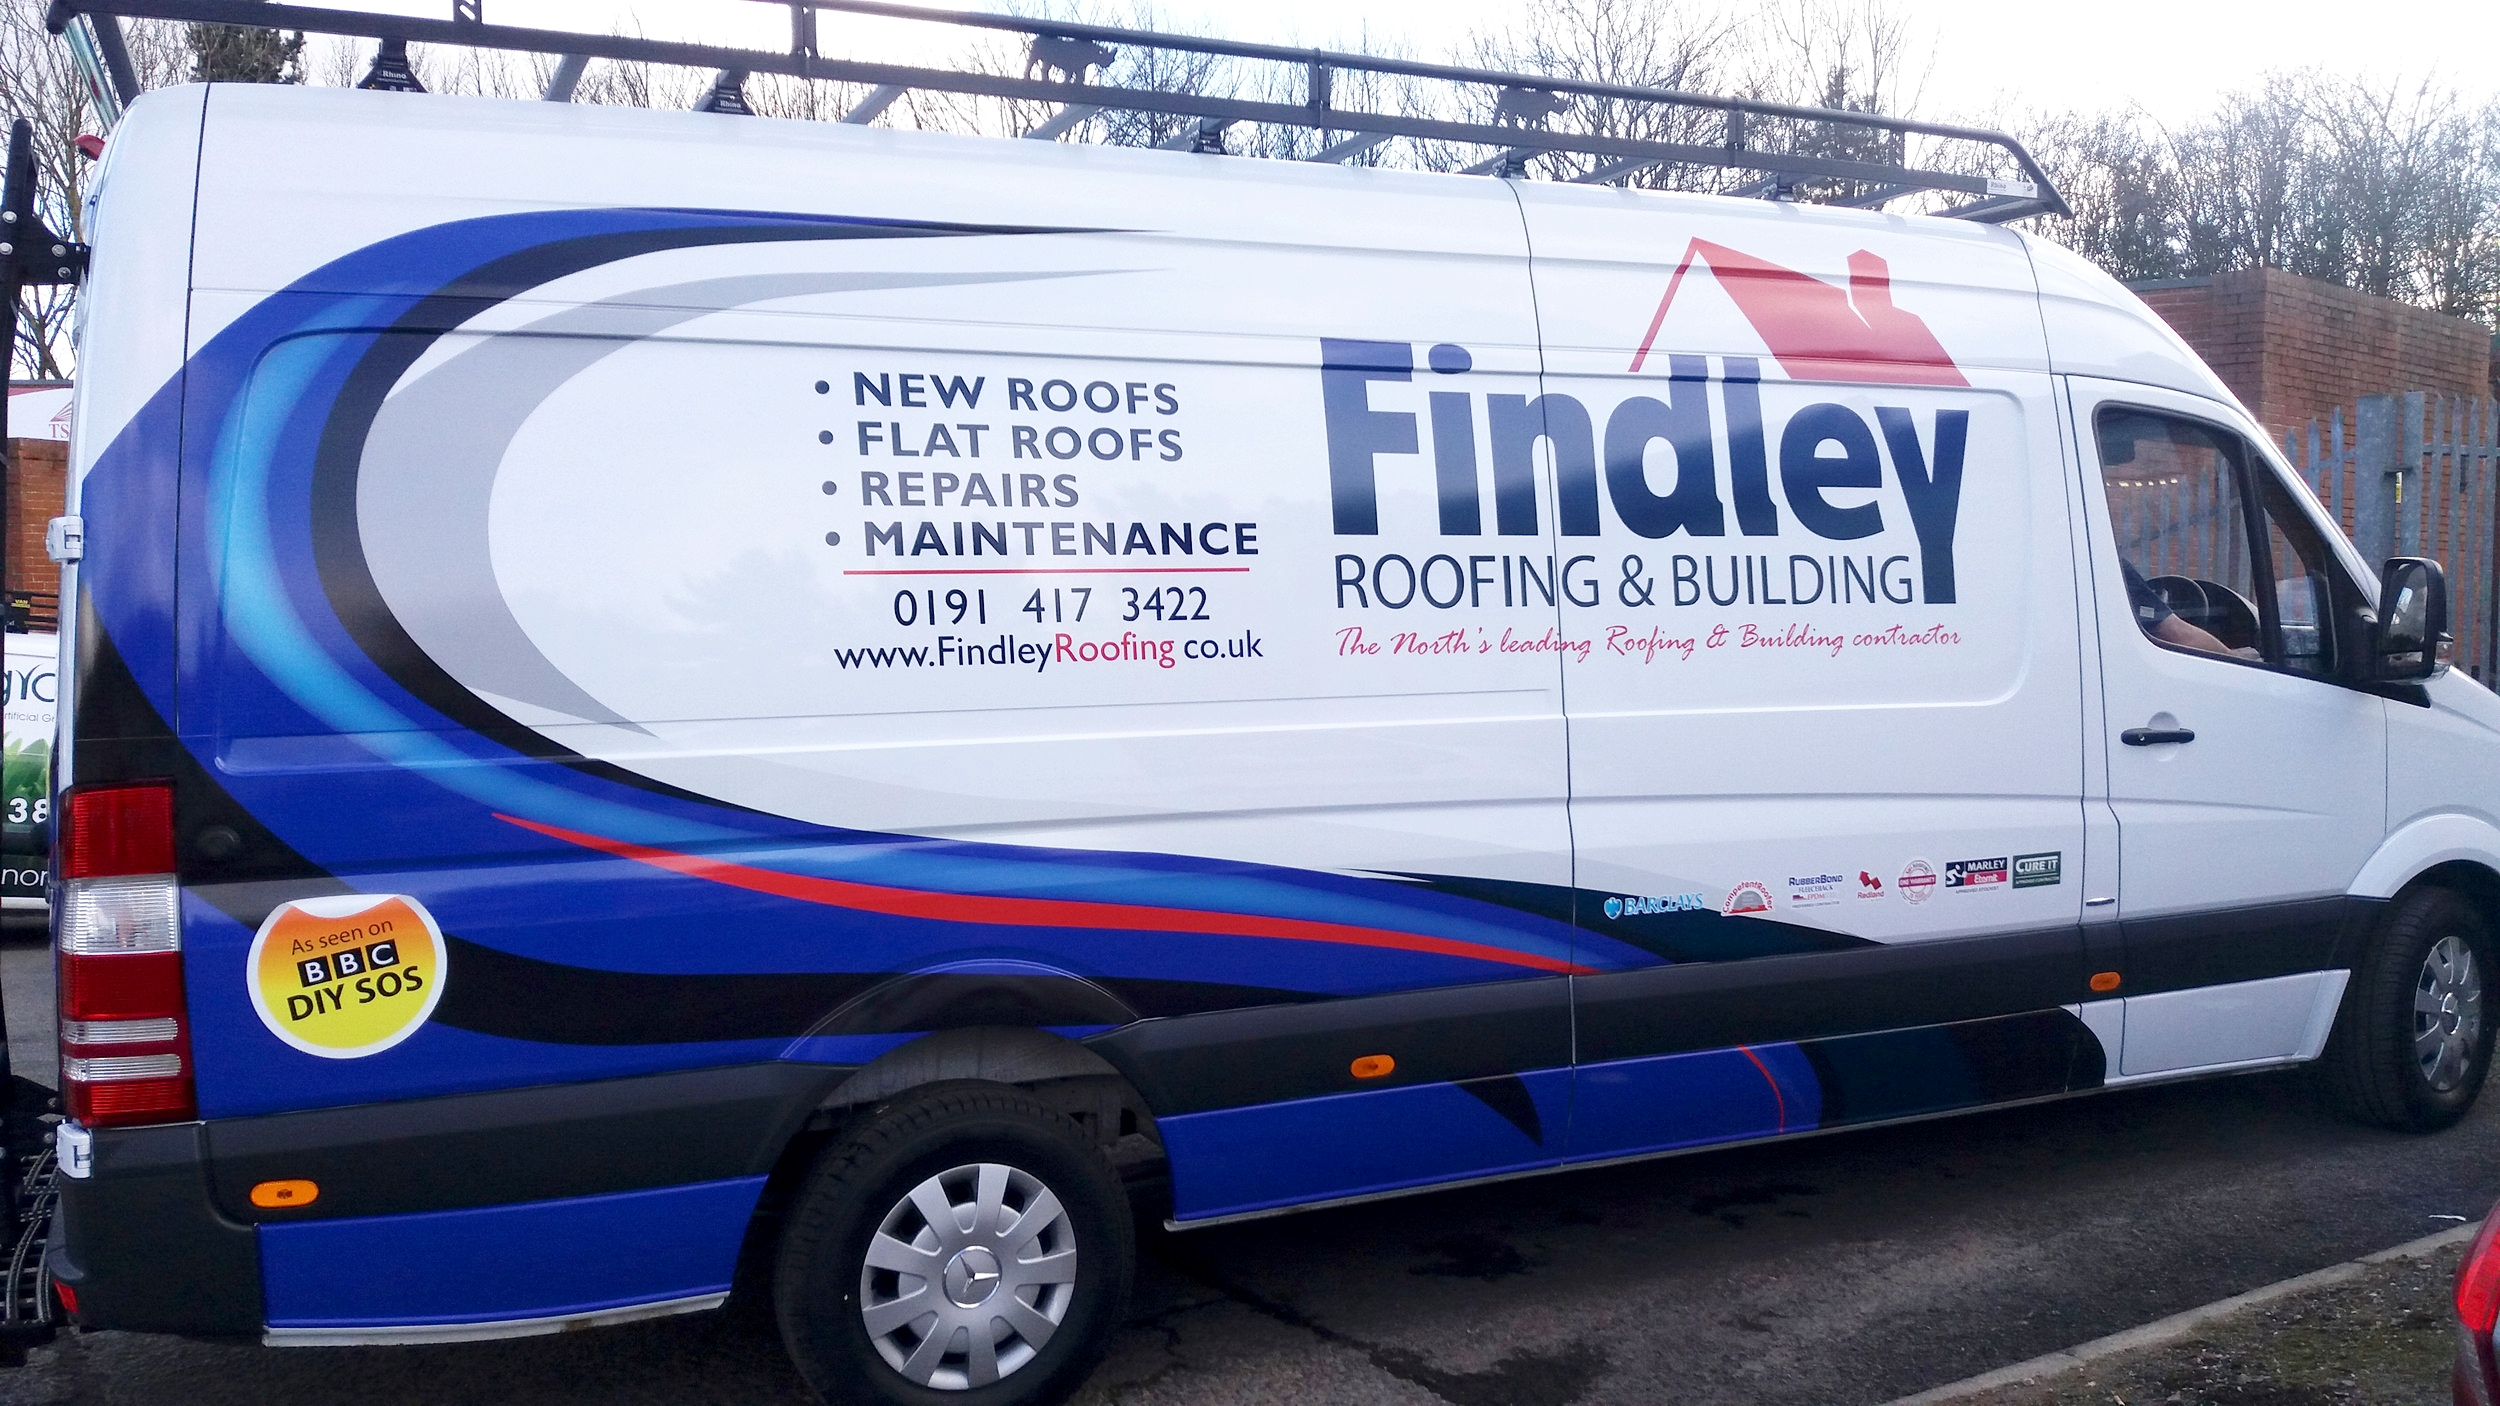 Findley Roofing